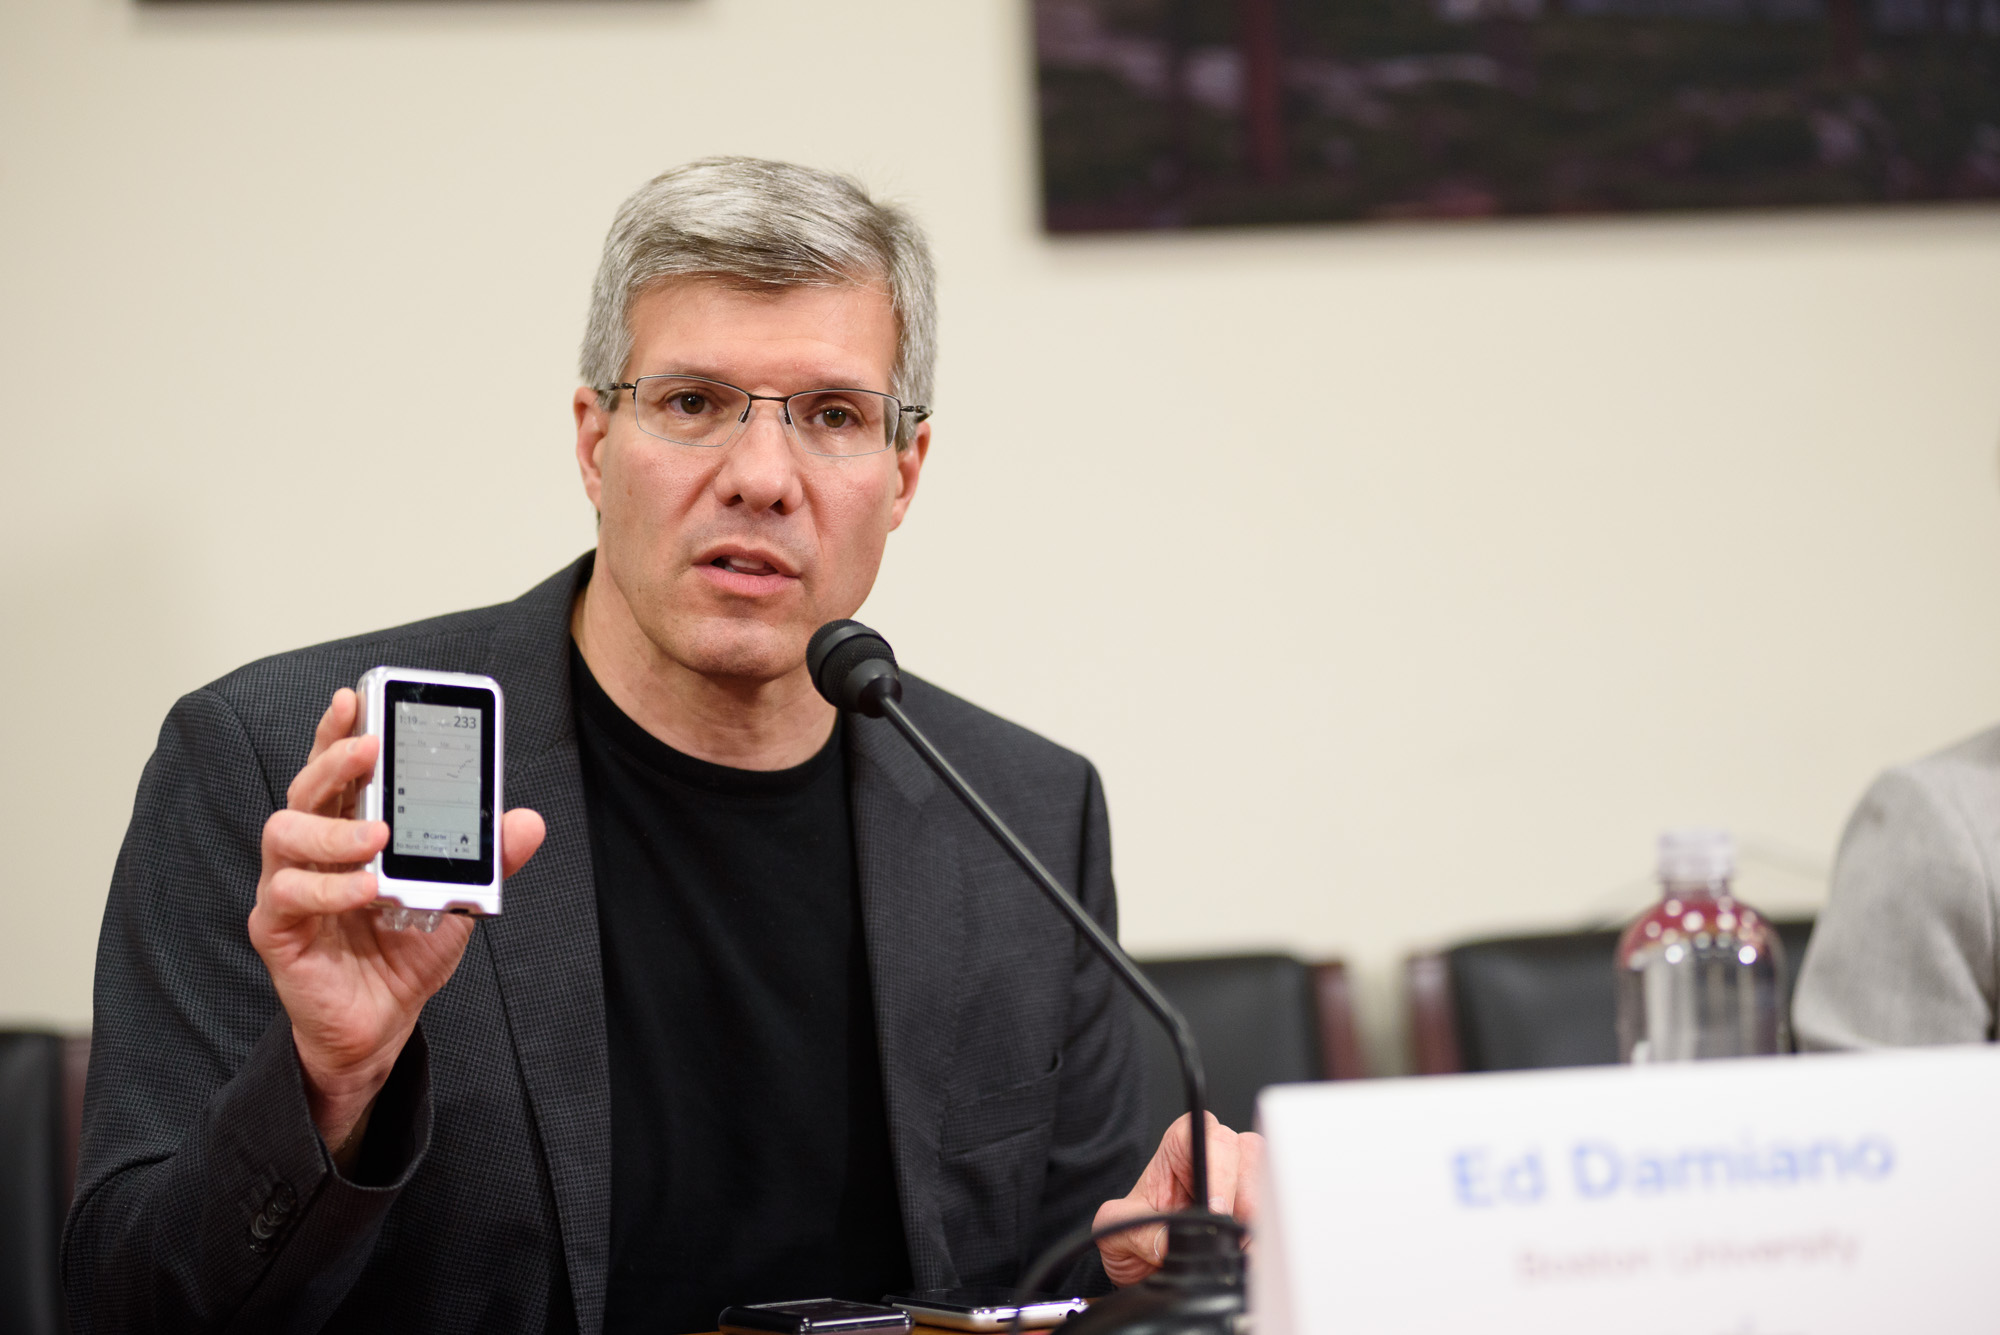 Dr. Ed Damiano of Boston University and Beta Bionics displays his invention the iLet,a fully integrated bionic pancreas. The device allows patients with Type One Diabetes to maintain their glucose metabolism with a device that fits in your pocket.